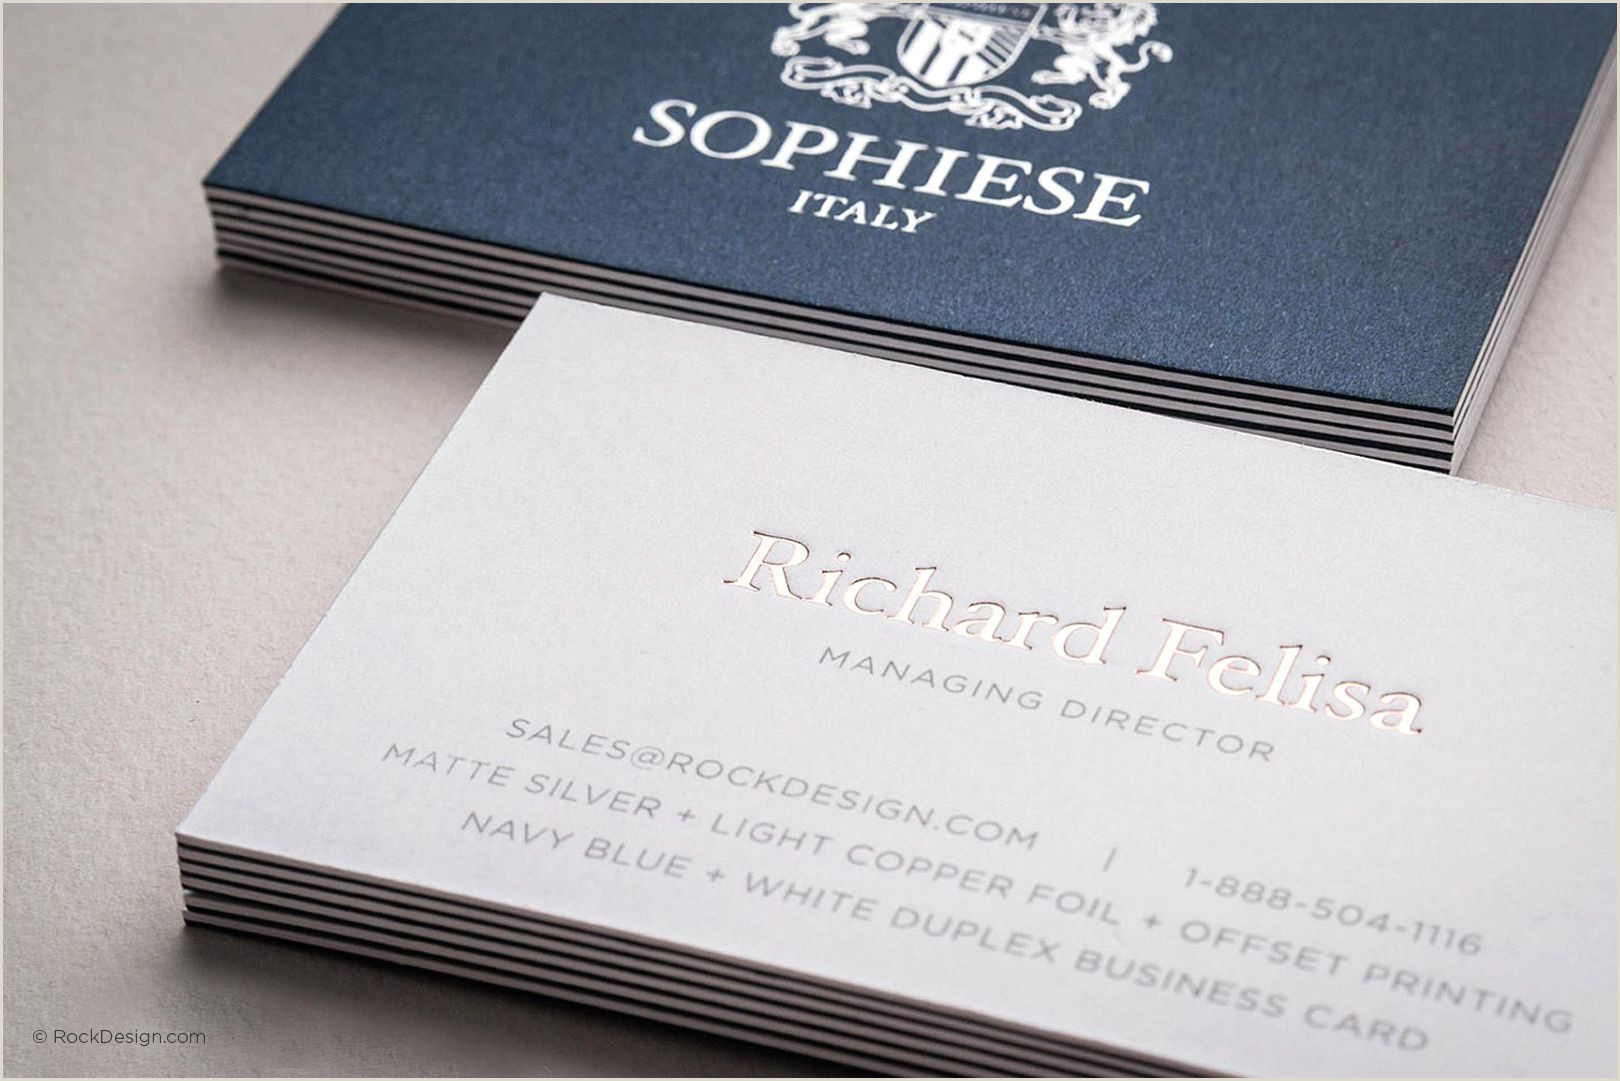 First Class Color Business Cards Fancy Custom Navy Blue And White Duplex Business Card With